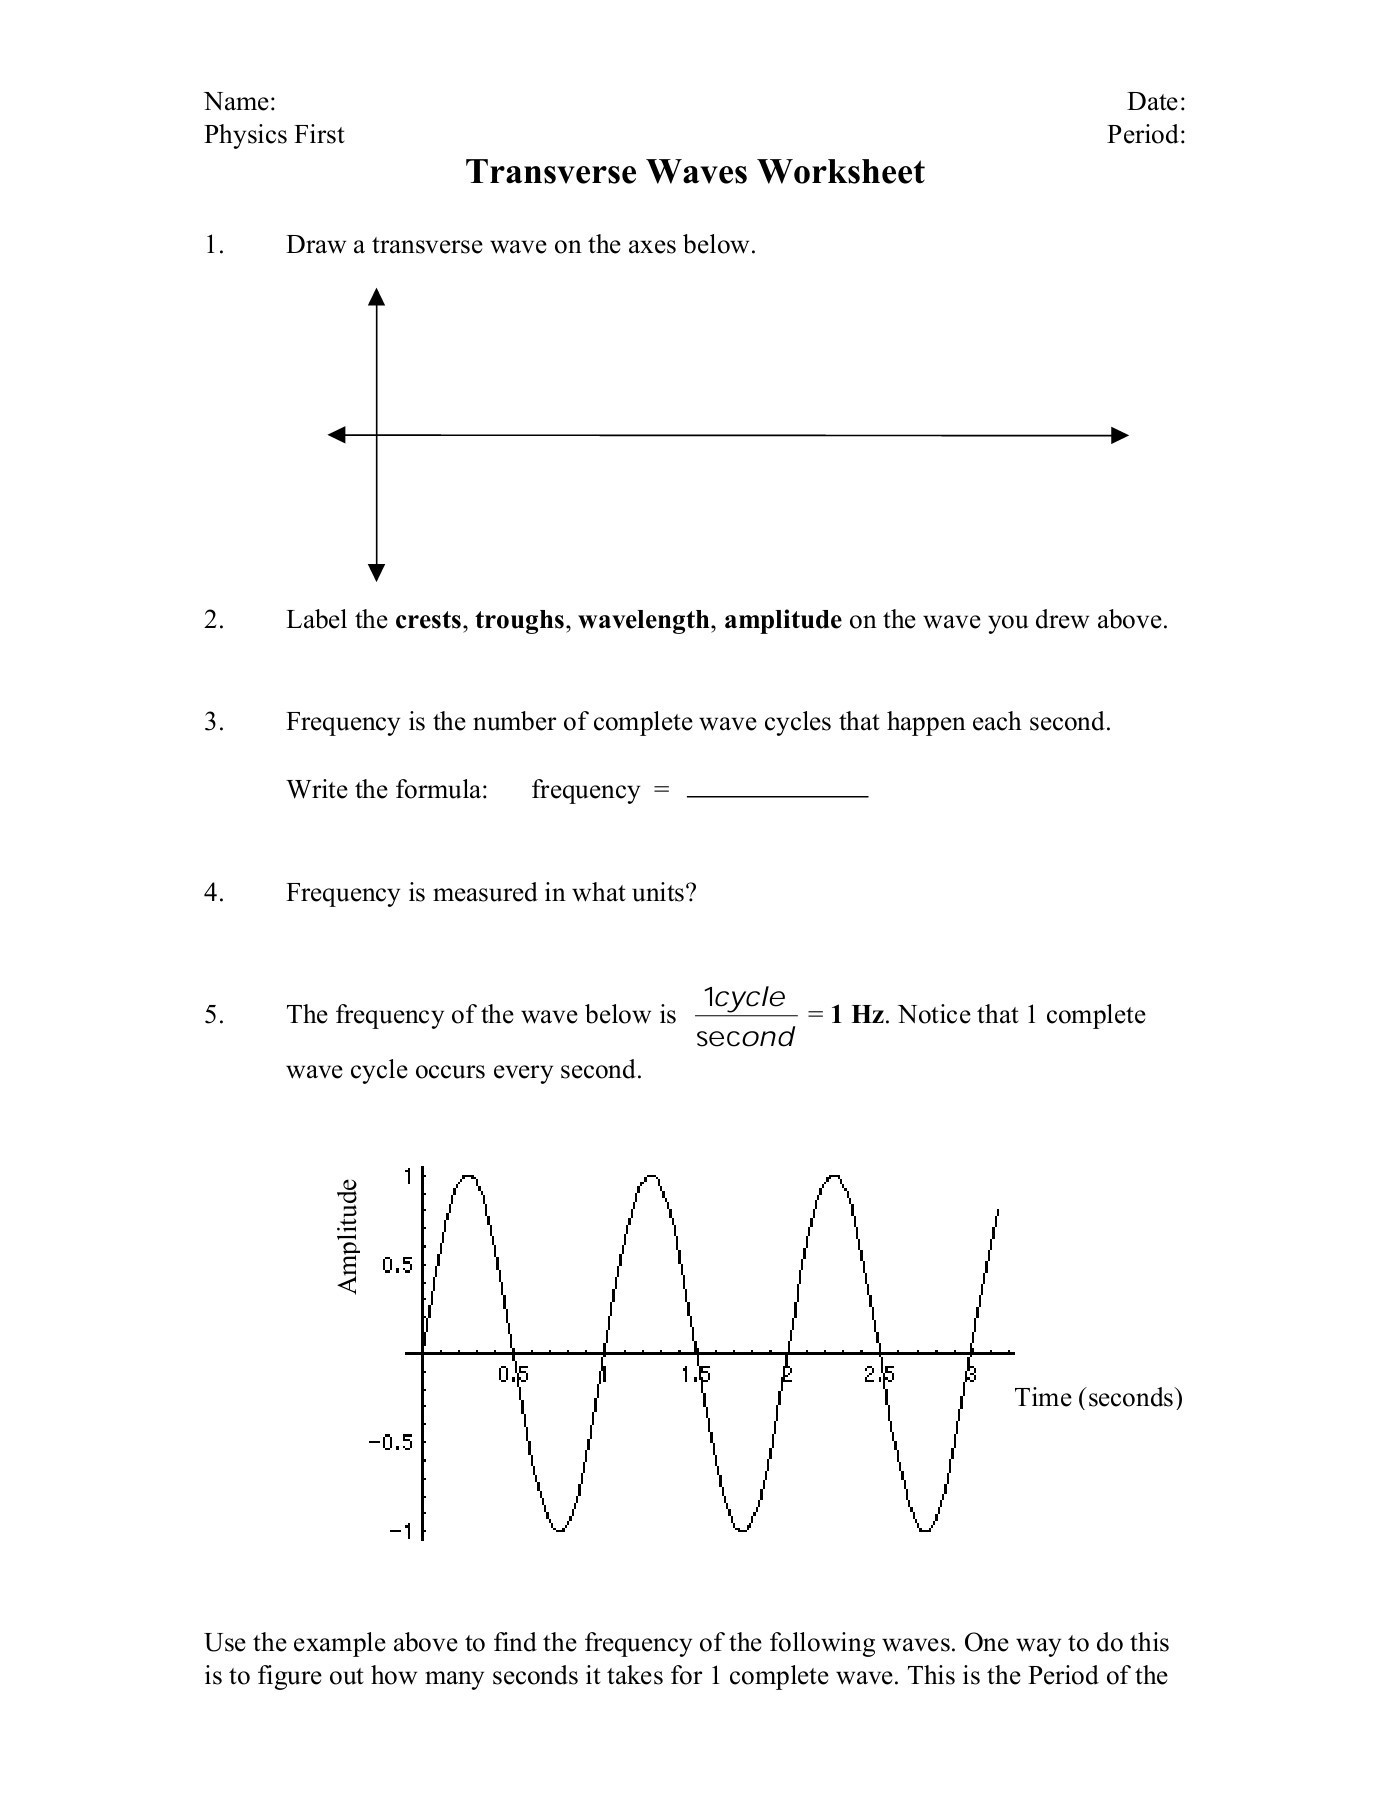 Waves Worksheet 1 Answers Transverse Waves Worksheet Varga Sturgis Home Pages 1